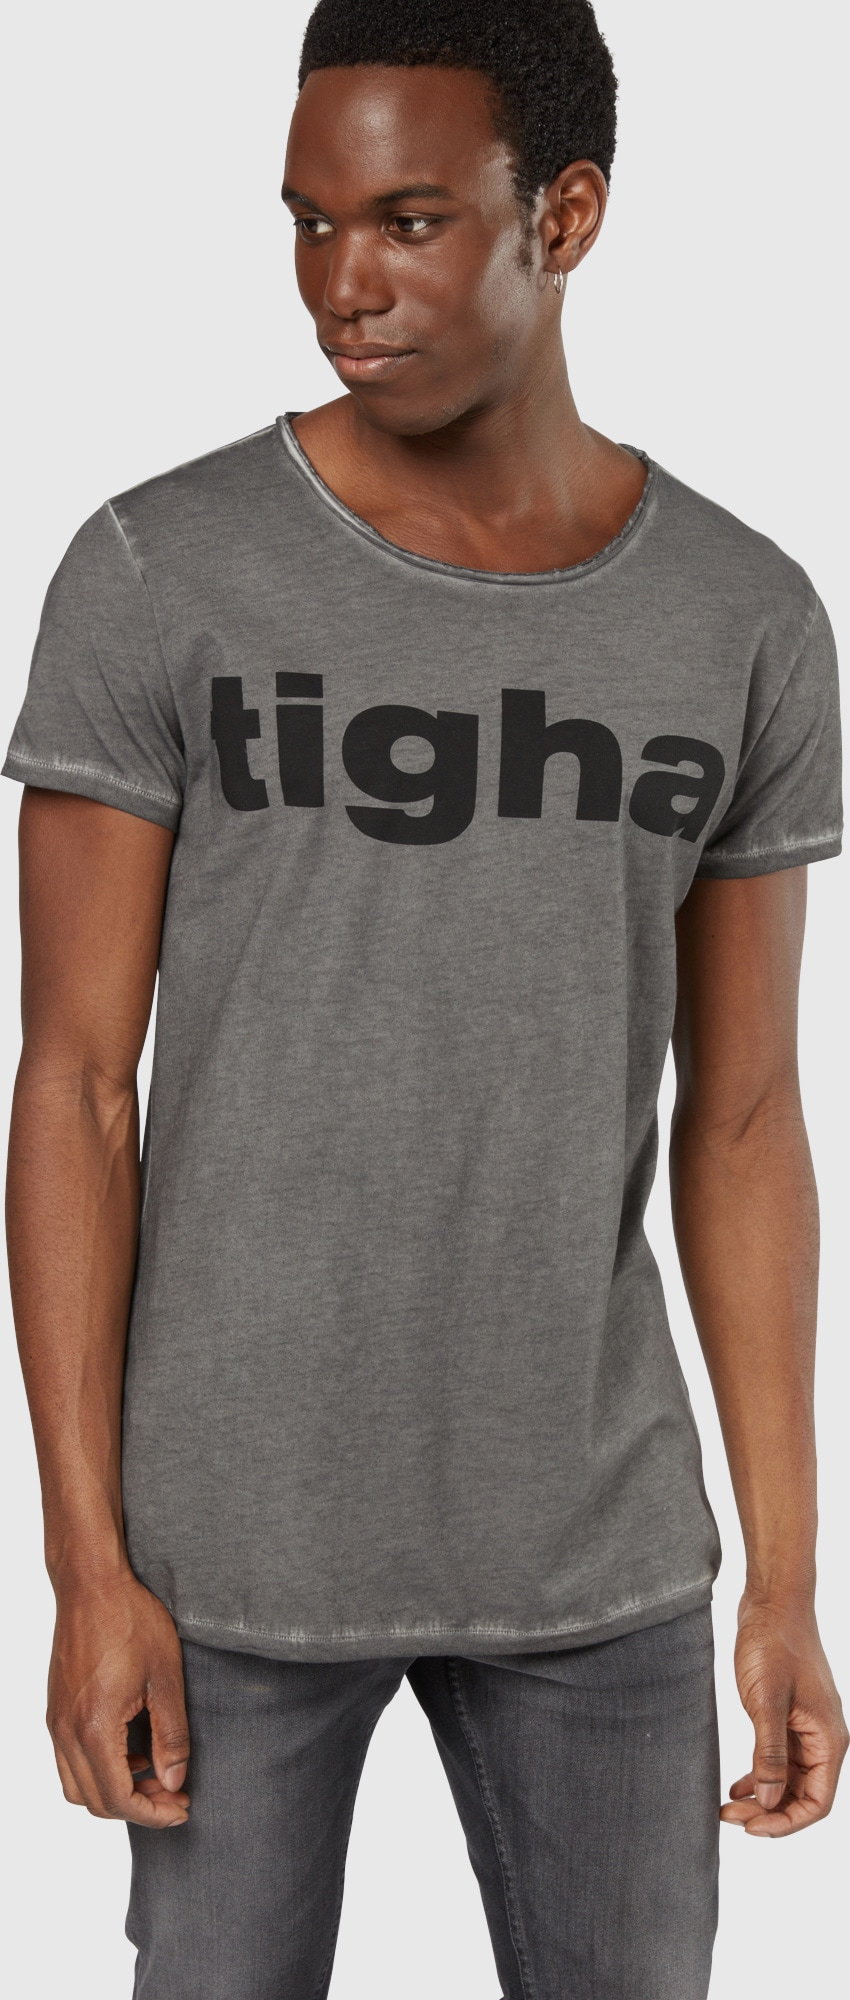 tigha t shirt 39 tigha logo msn 39 in grau about you. Black Bedroom Furniture Sets. Home Design Ideas